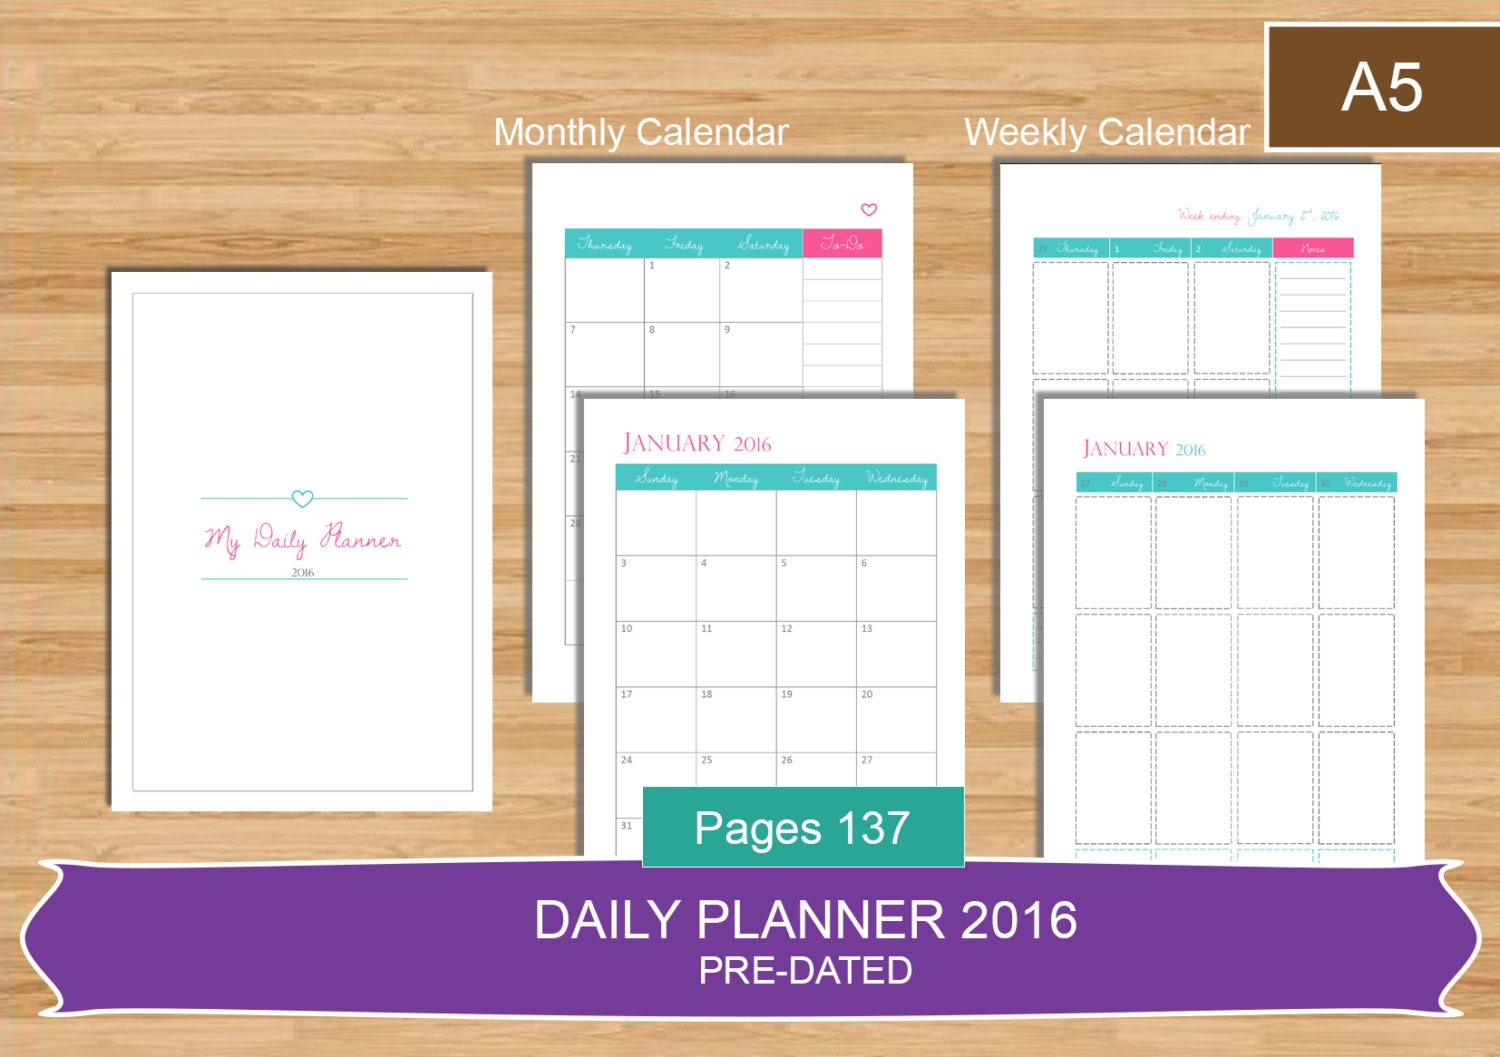 A5 daily planner 2016 pdf everyday planner calendar 2016 for Daily planner maker